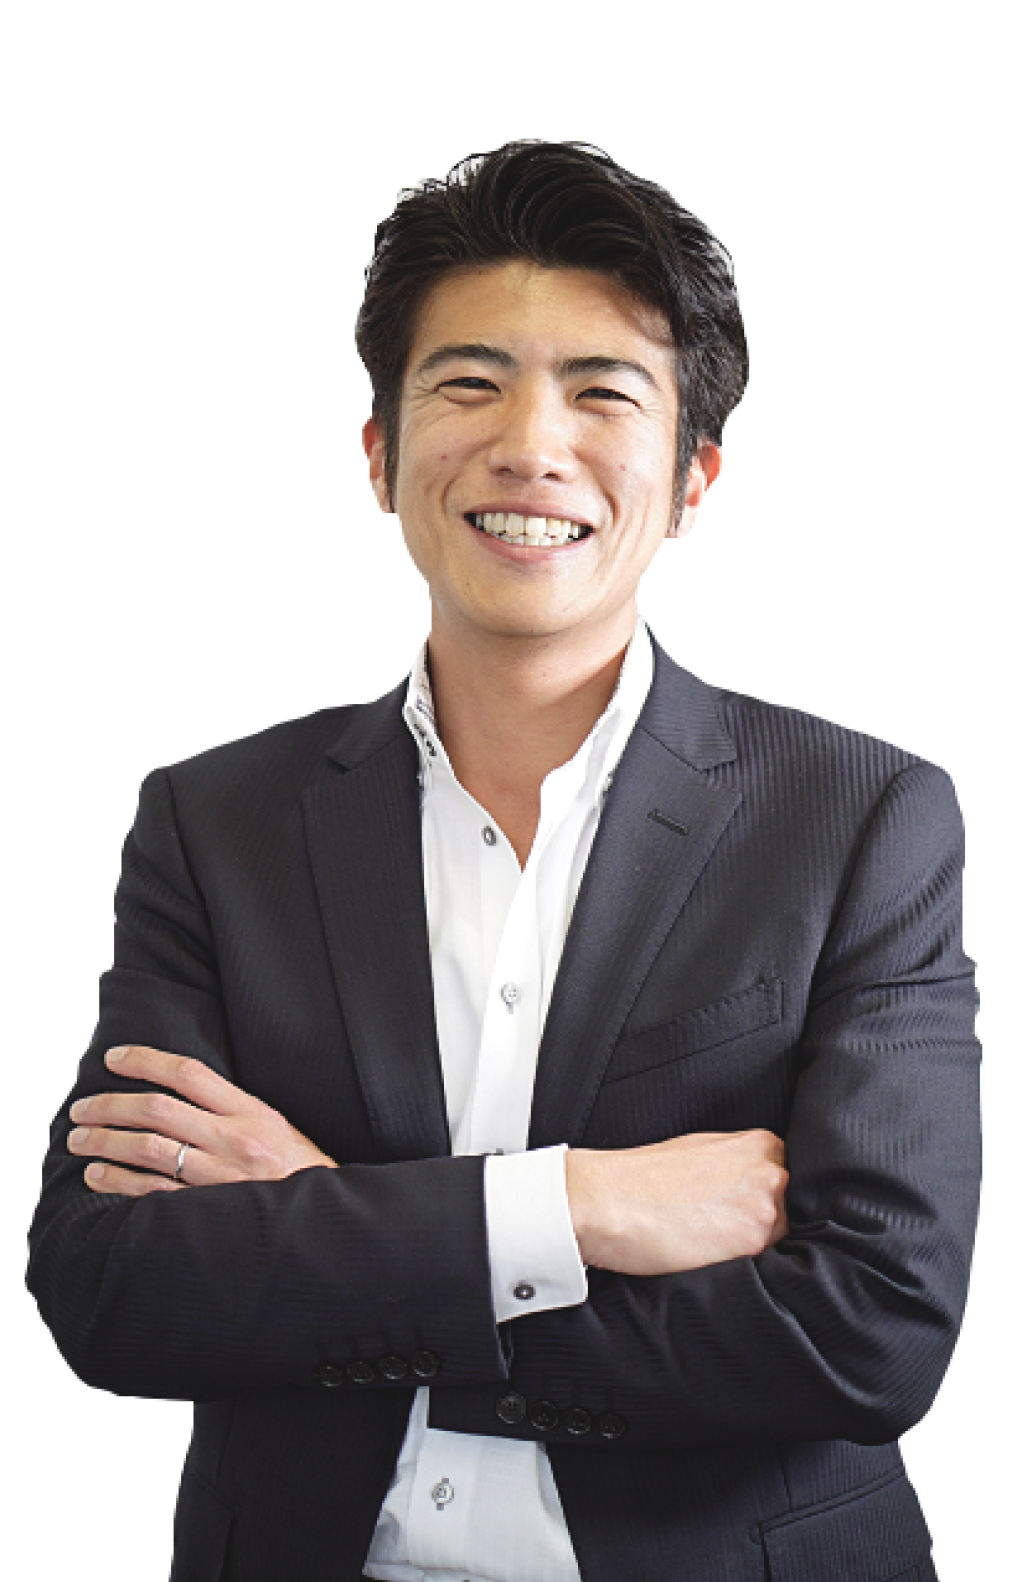 W2 Solution CEO